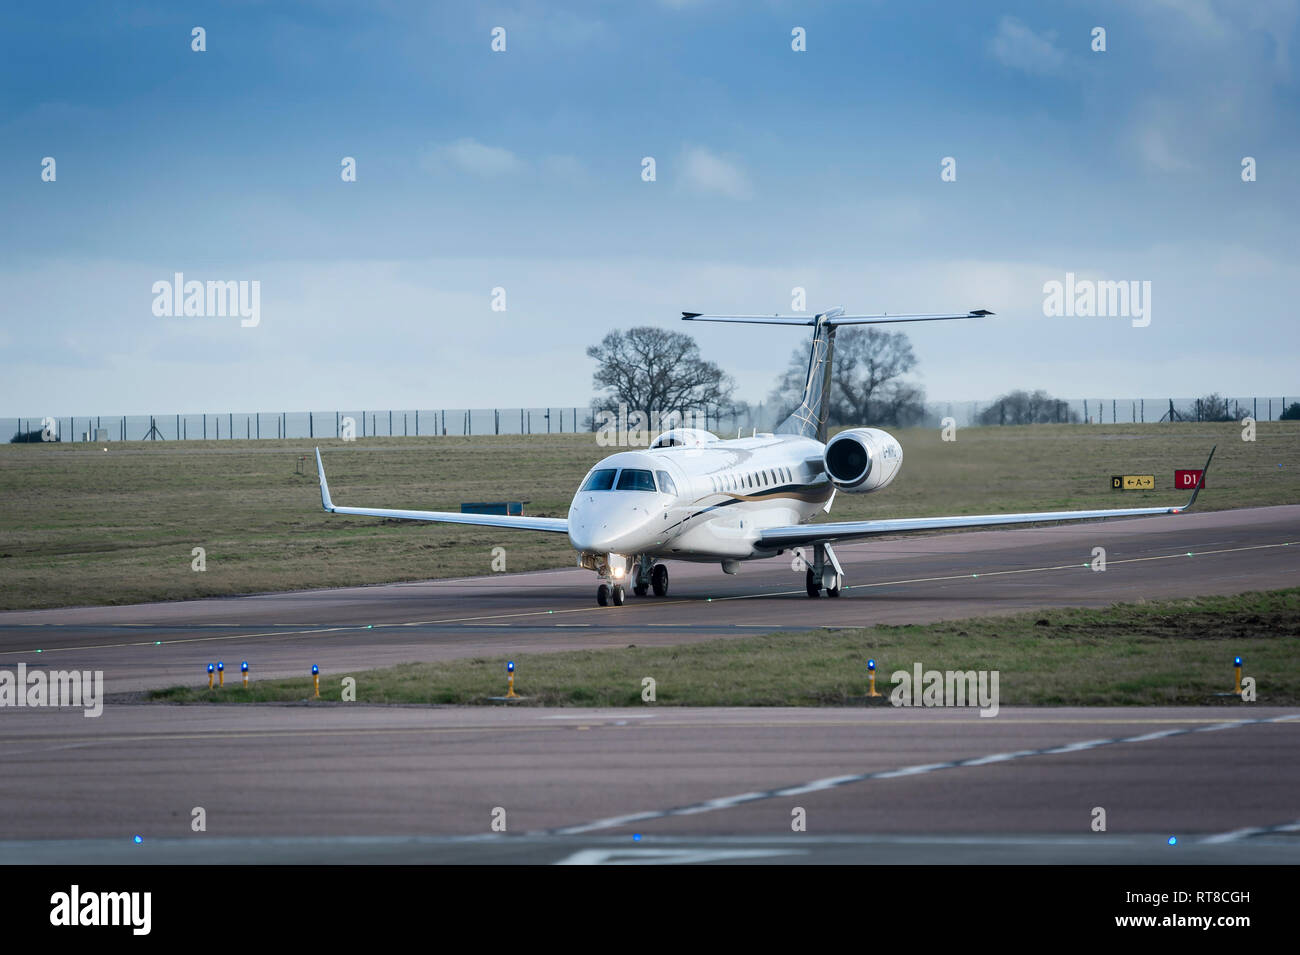 Embraer Legacy 650 G-WIRG business jet aircraft of Air Charter Scotland taxiing at Luton airport, England. Stock Photo